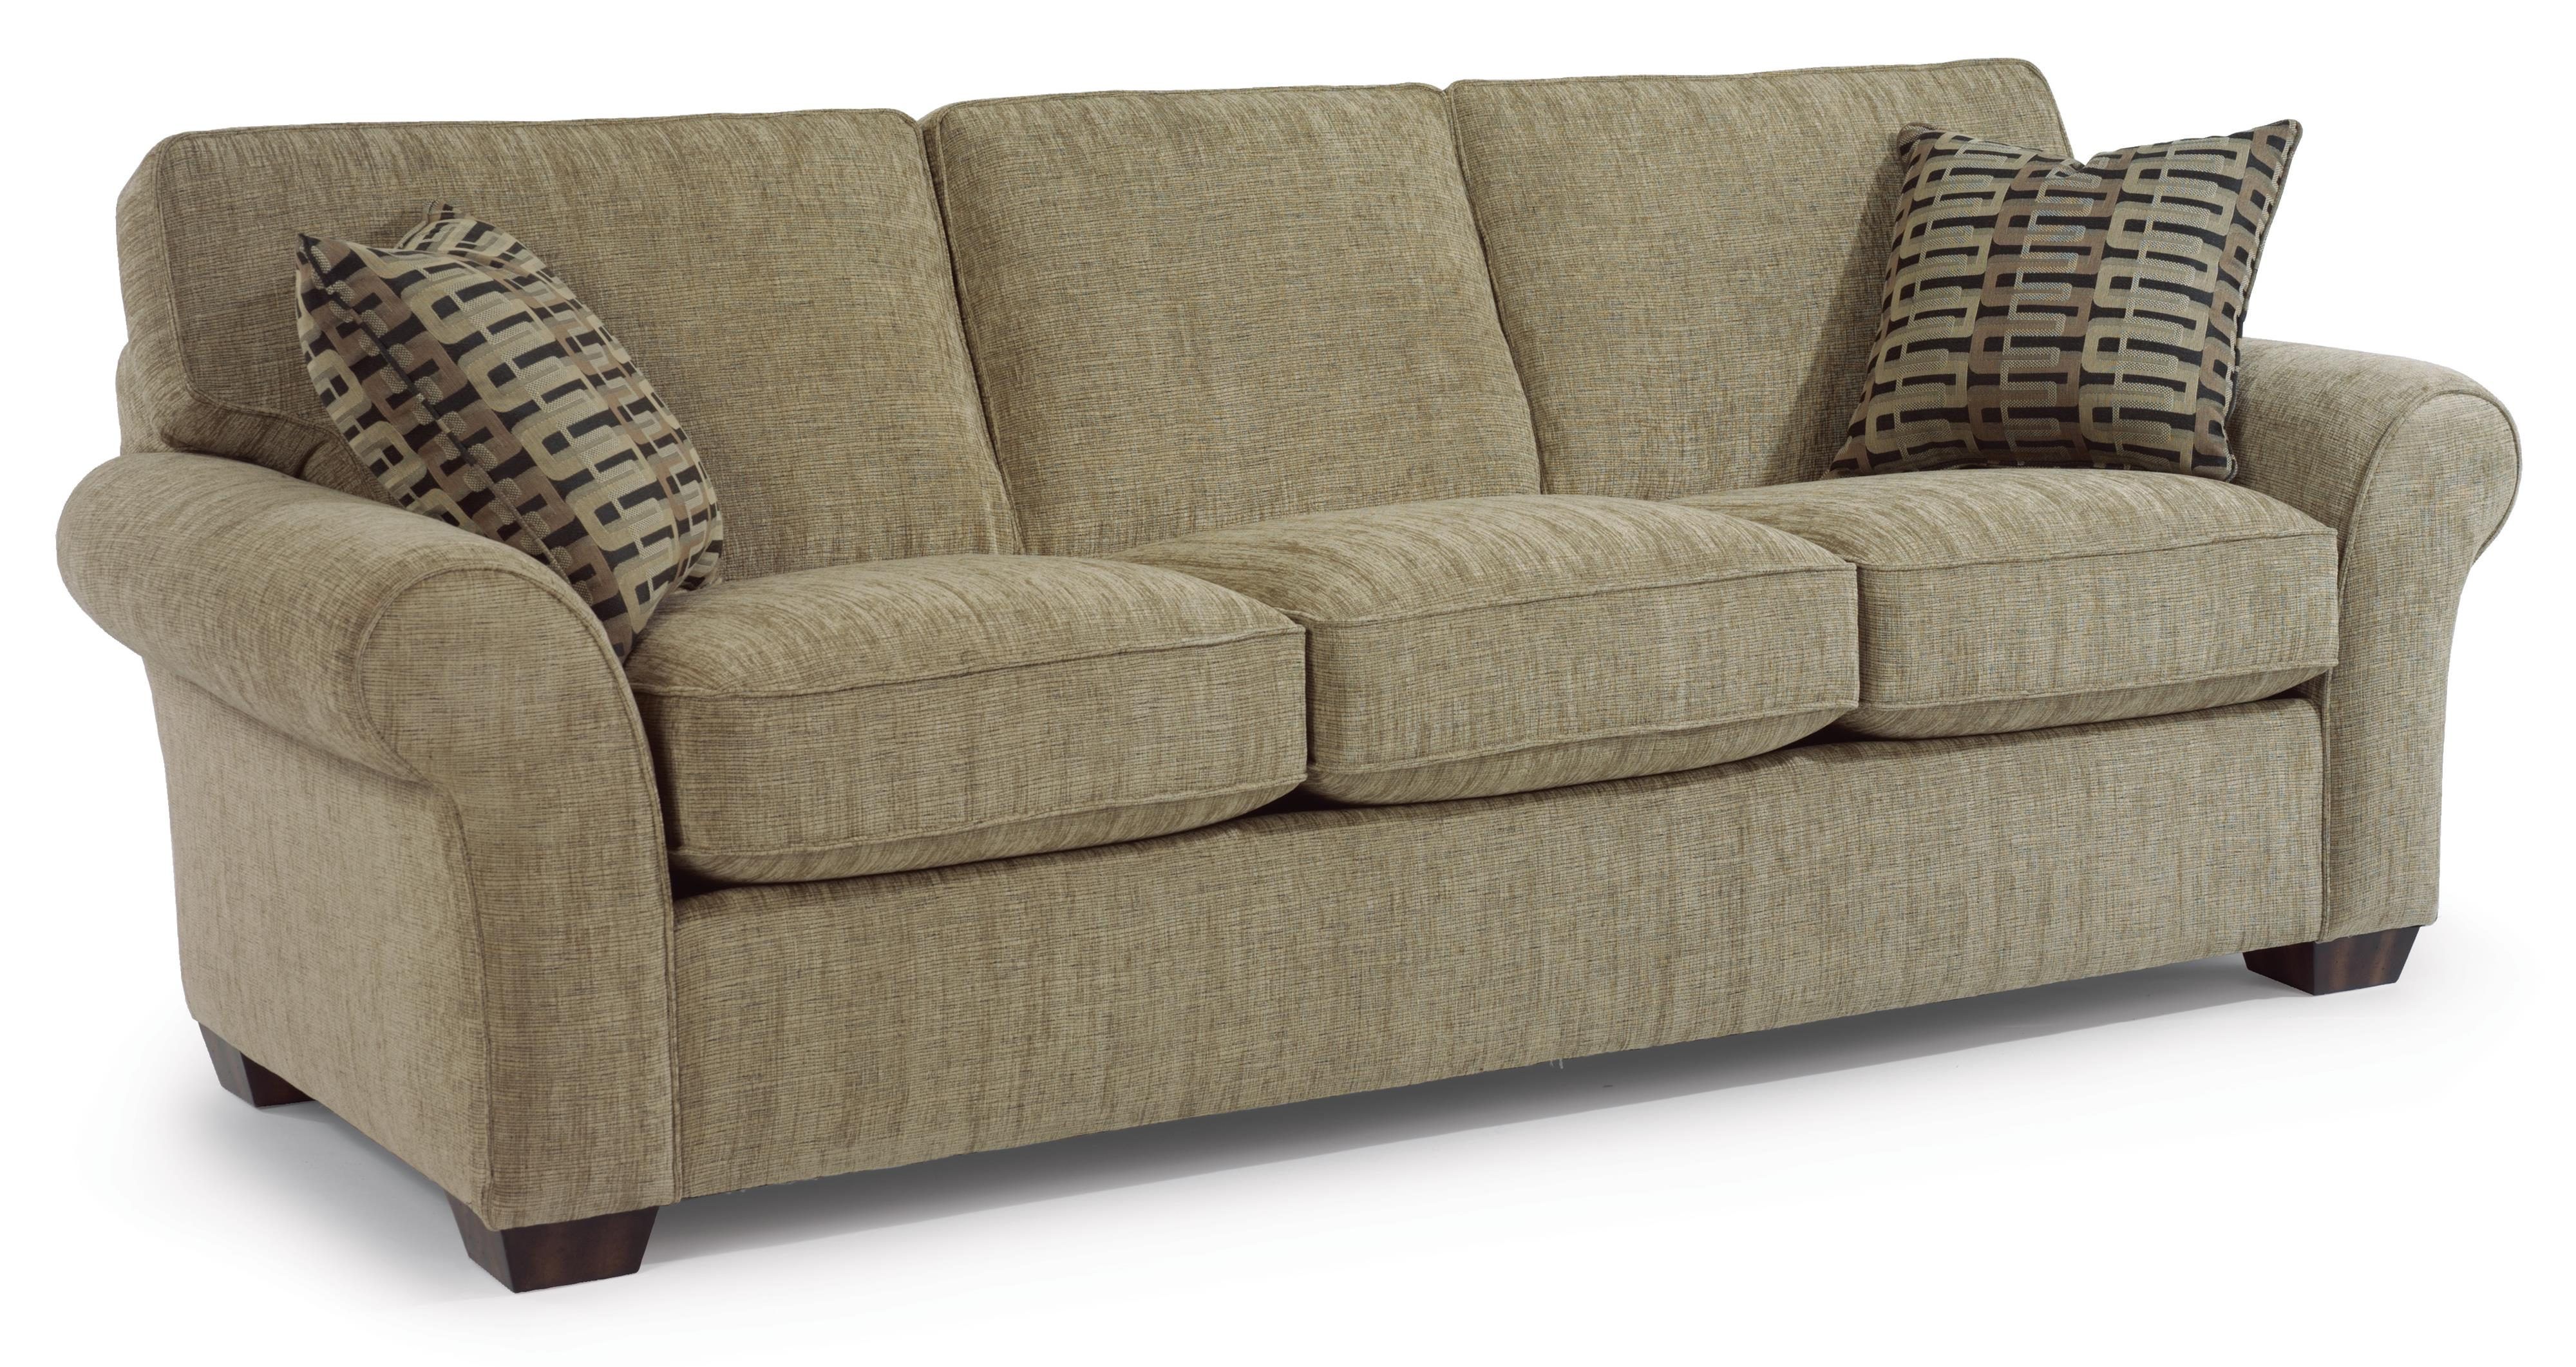 91 Vail Three Cushion Sofa